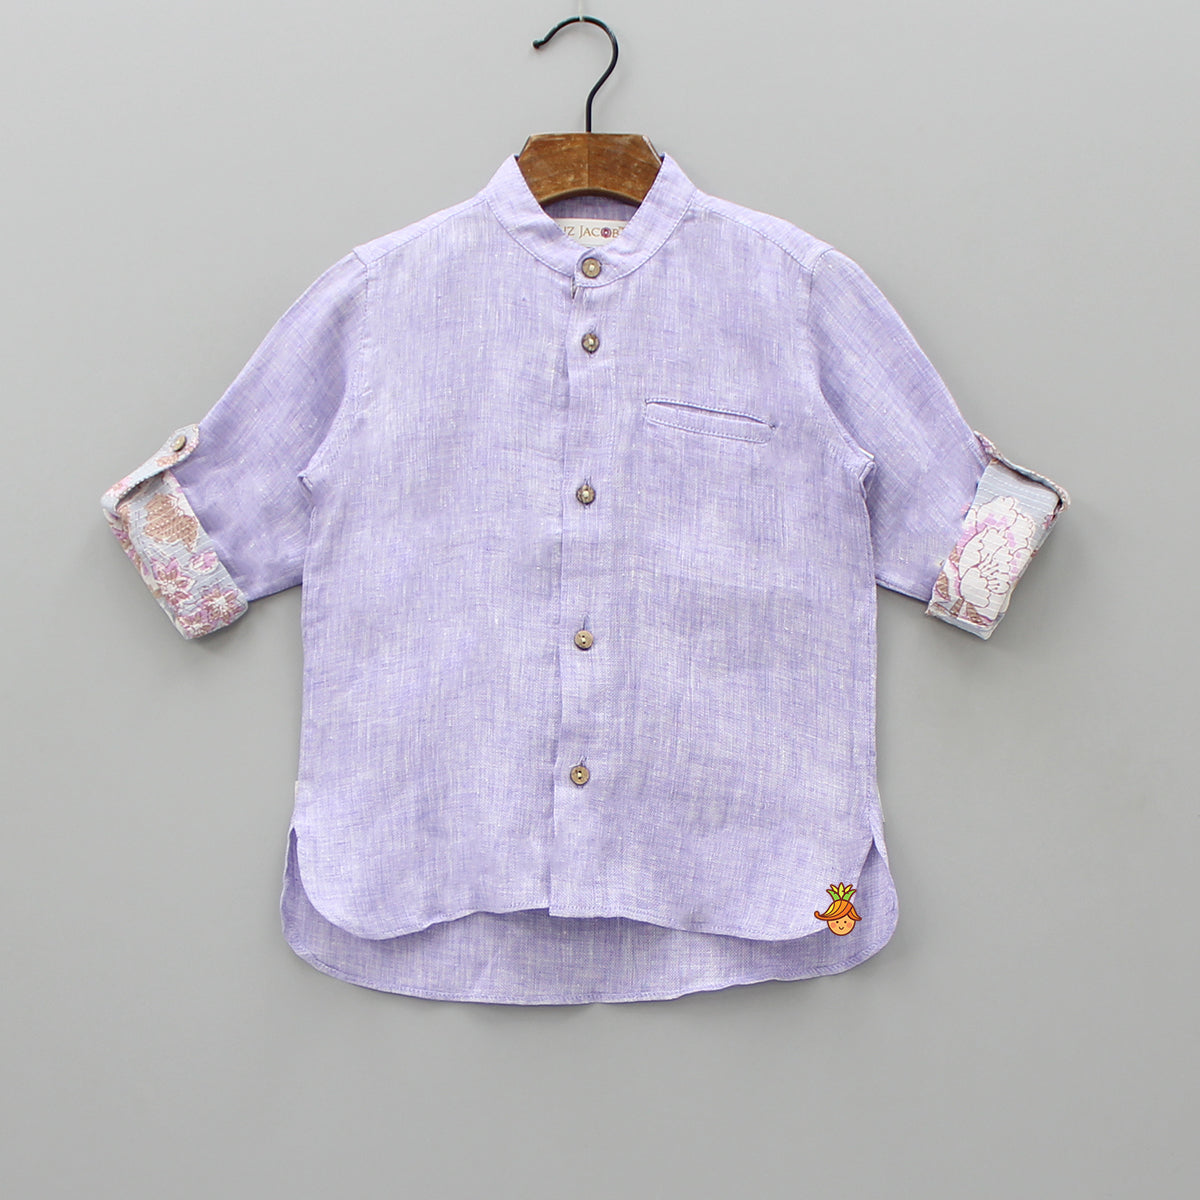 Lavender Shirt With Printed Turn-up Sleeves